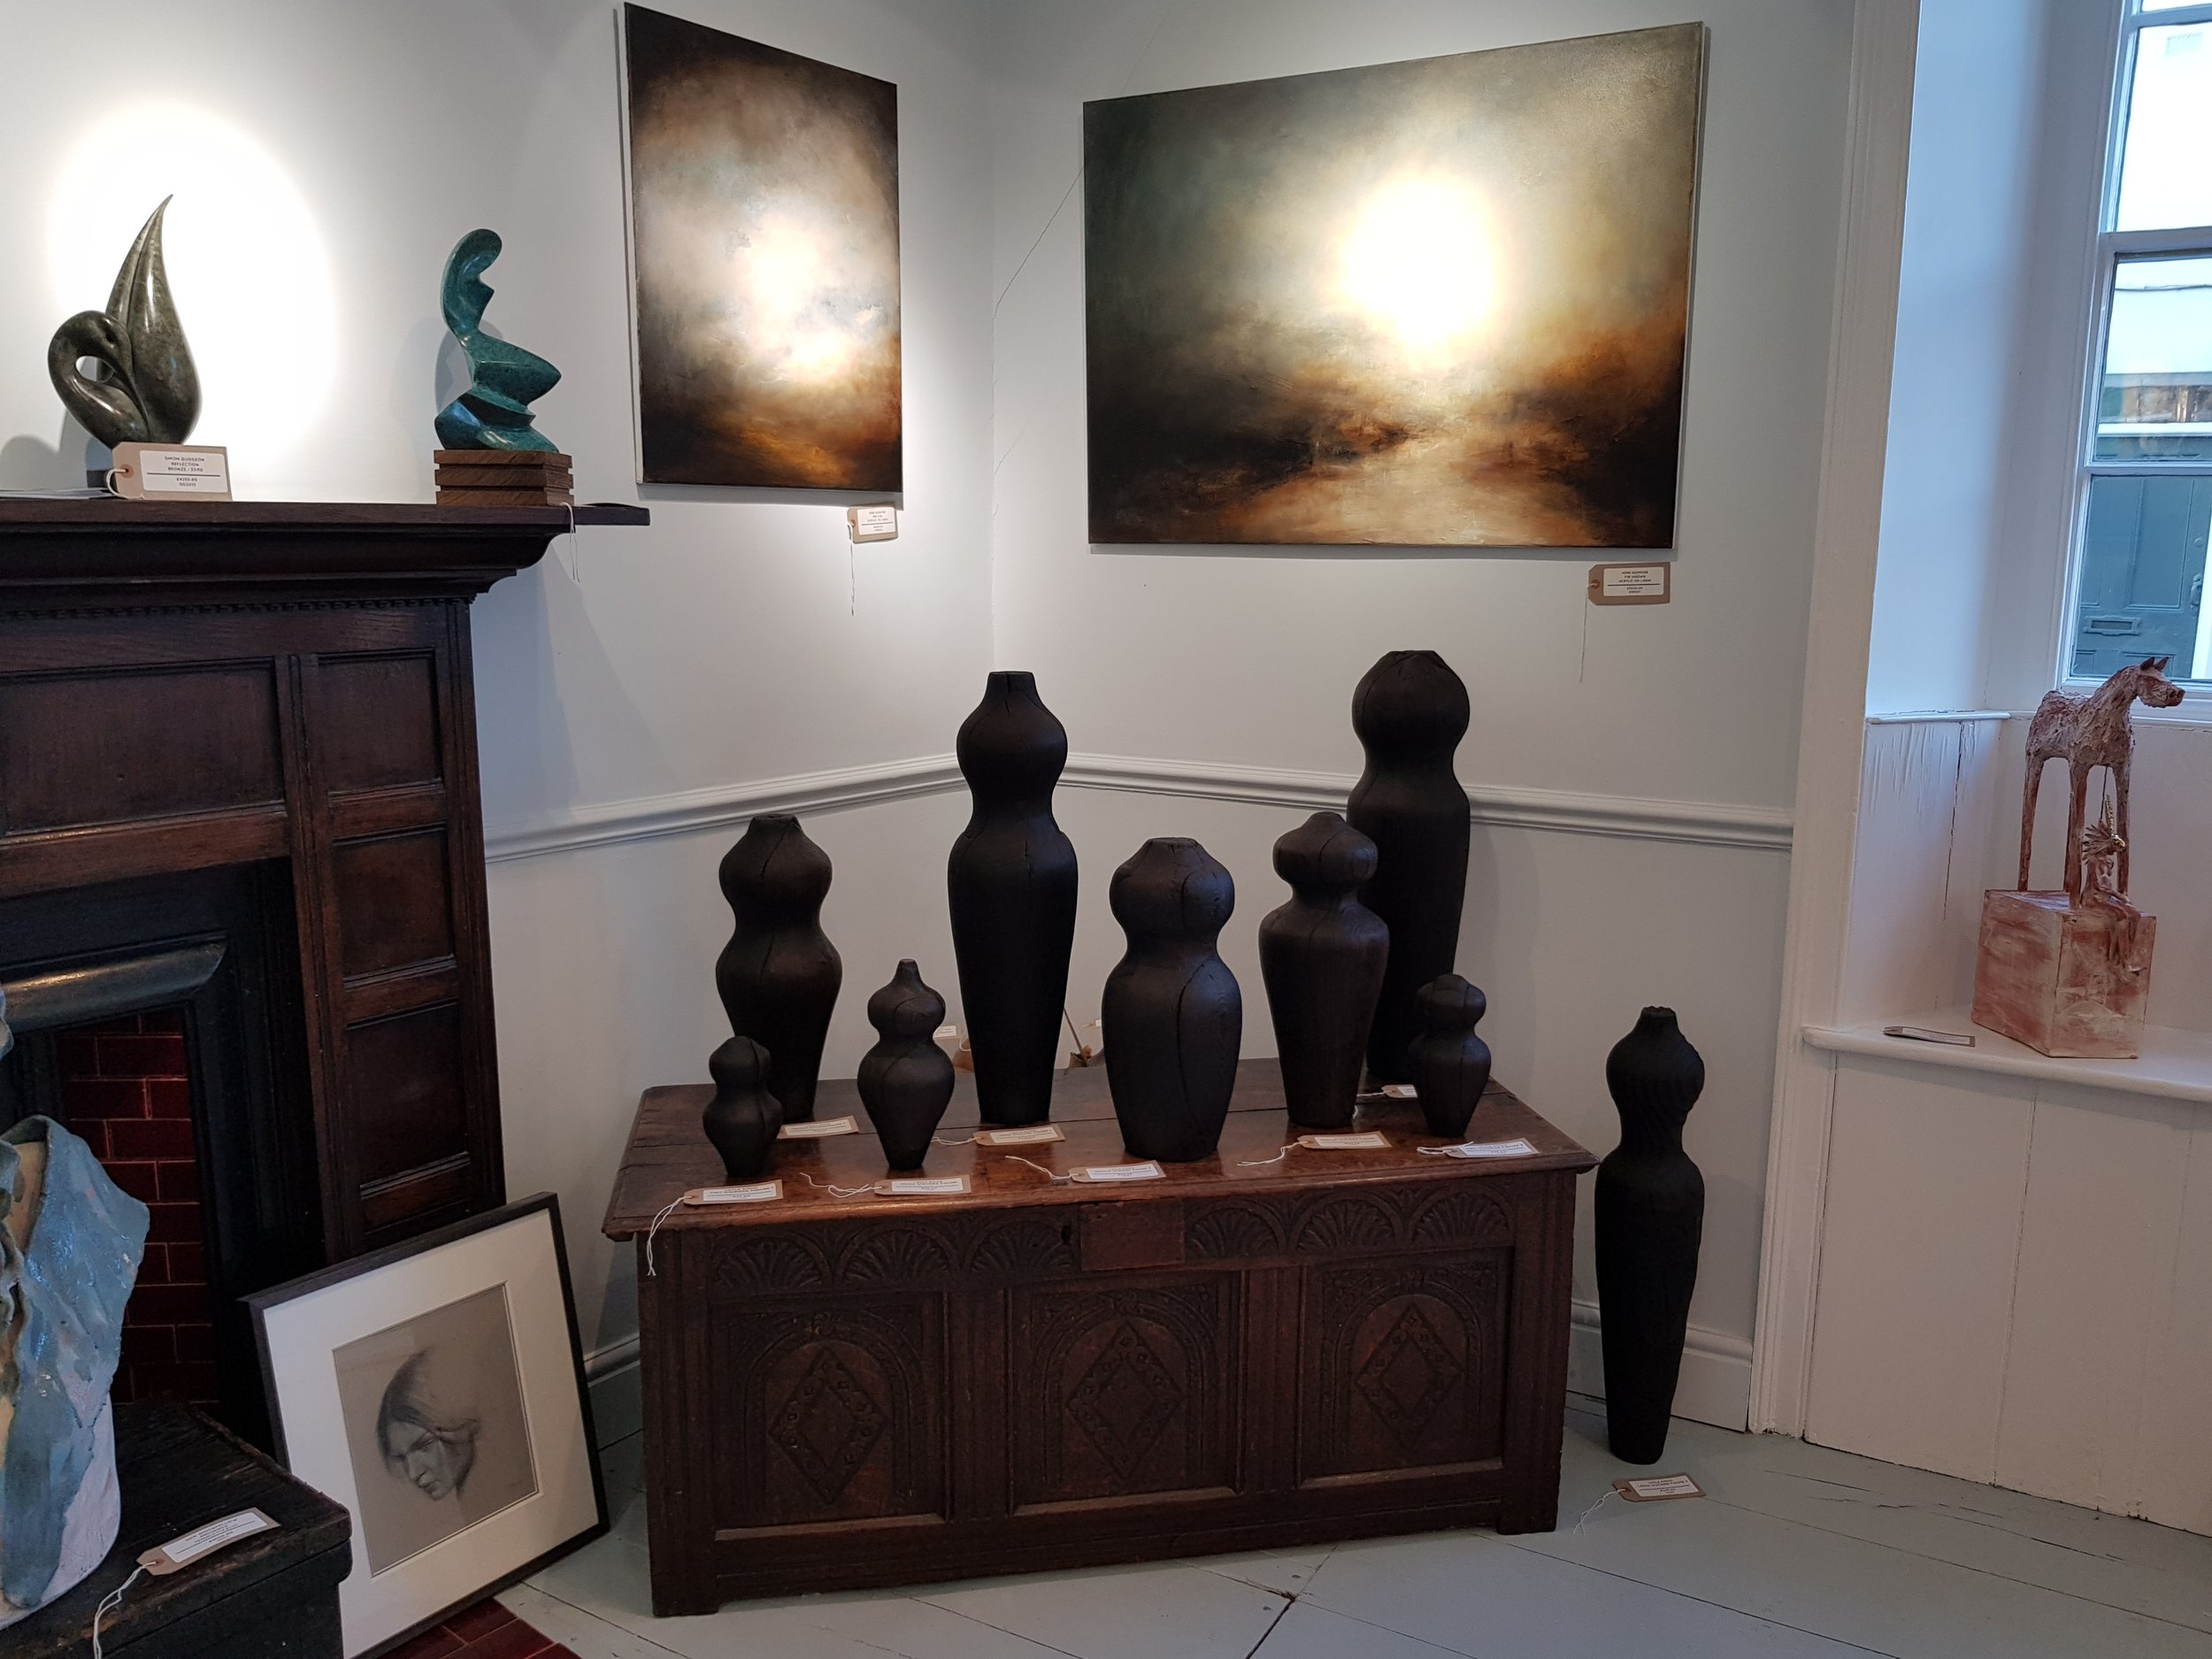 From right to left: Simon Gudgeon, Rick Young, Marko Humphrey-Lahti, Kerr Ashmore, Layla Khoo and Valerie Price-West - £120 to plenty